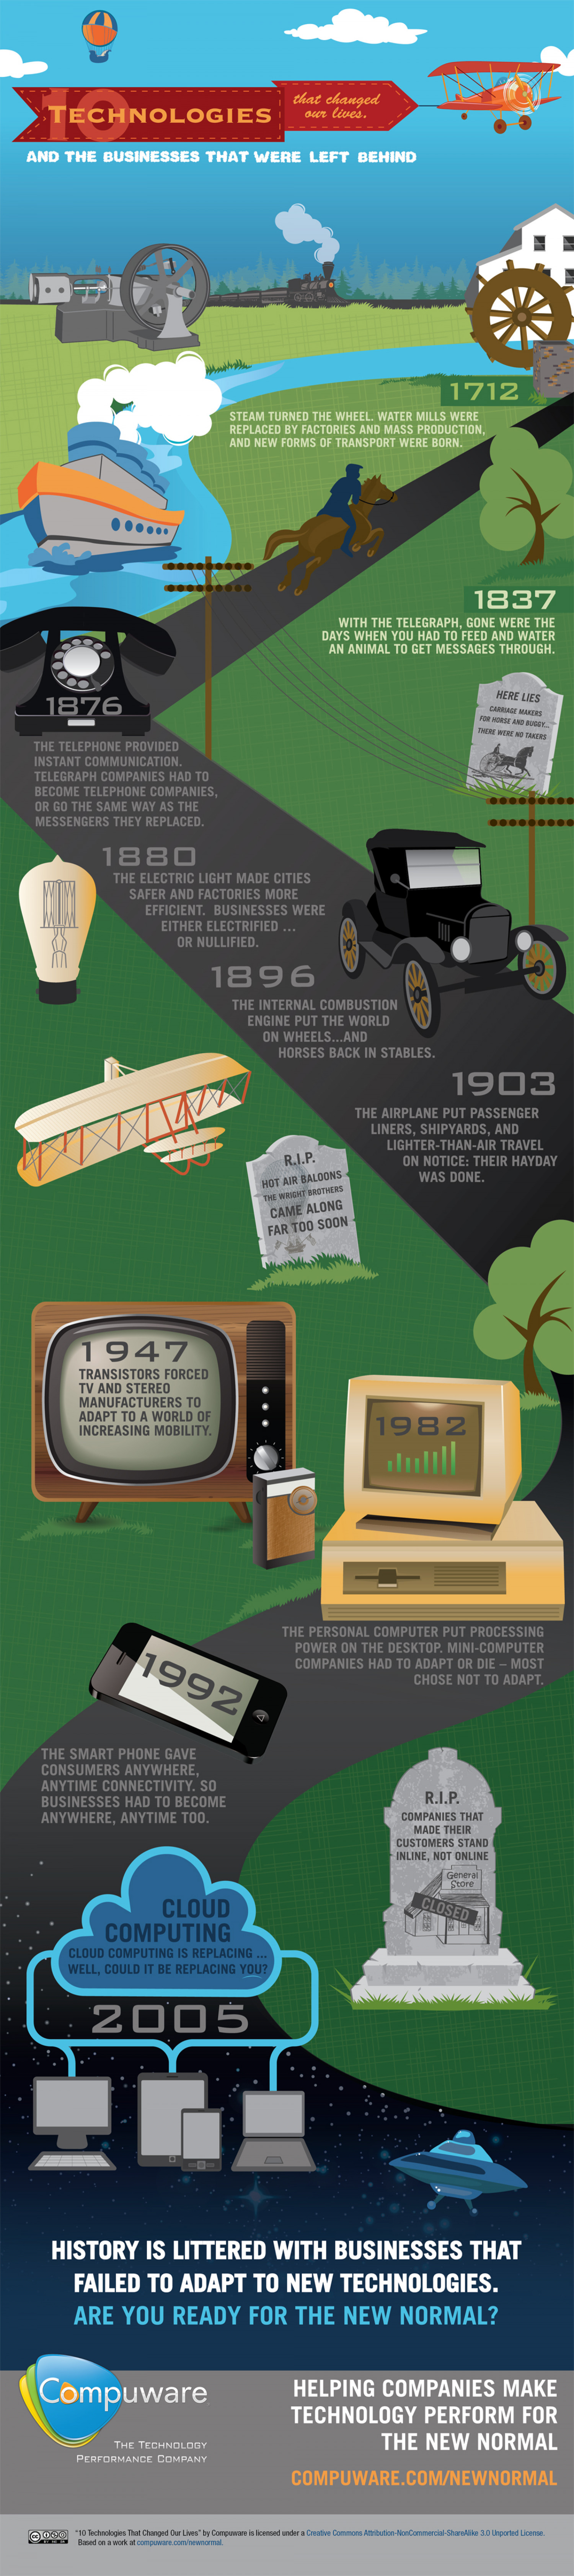 The 10 Technologies that Changed the World, and the Industries That Were Left Behind Infographic